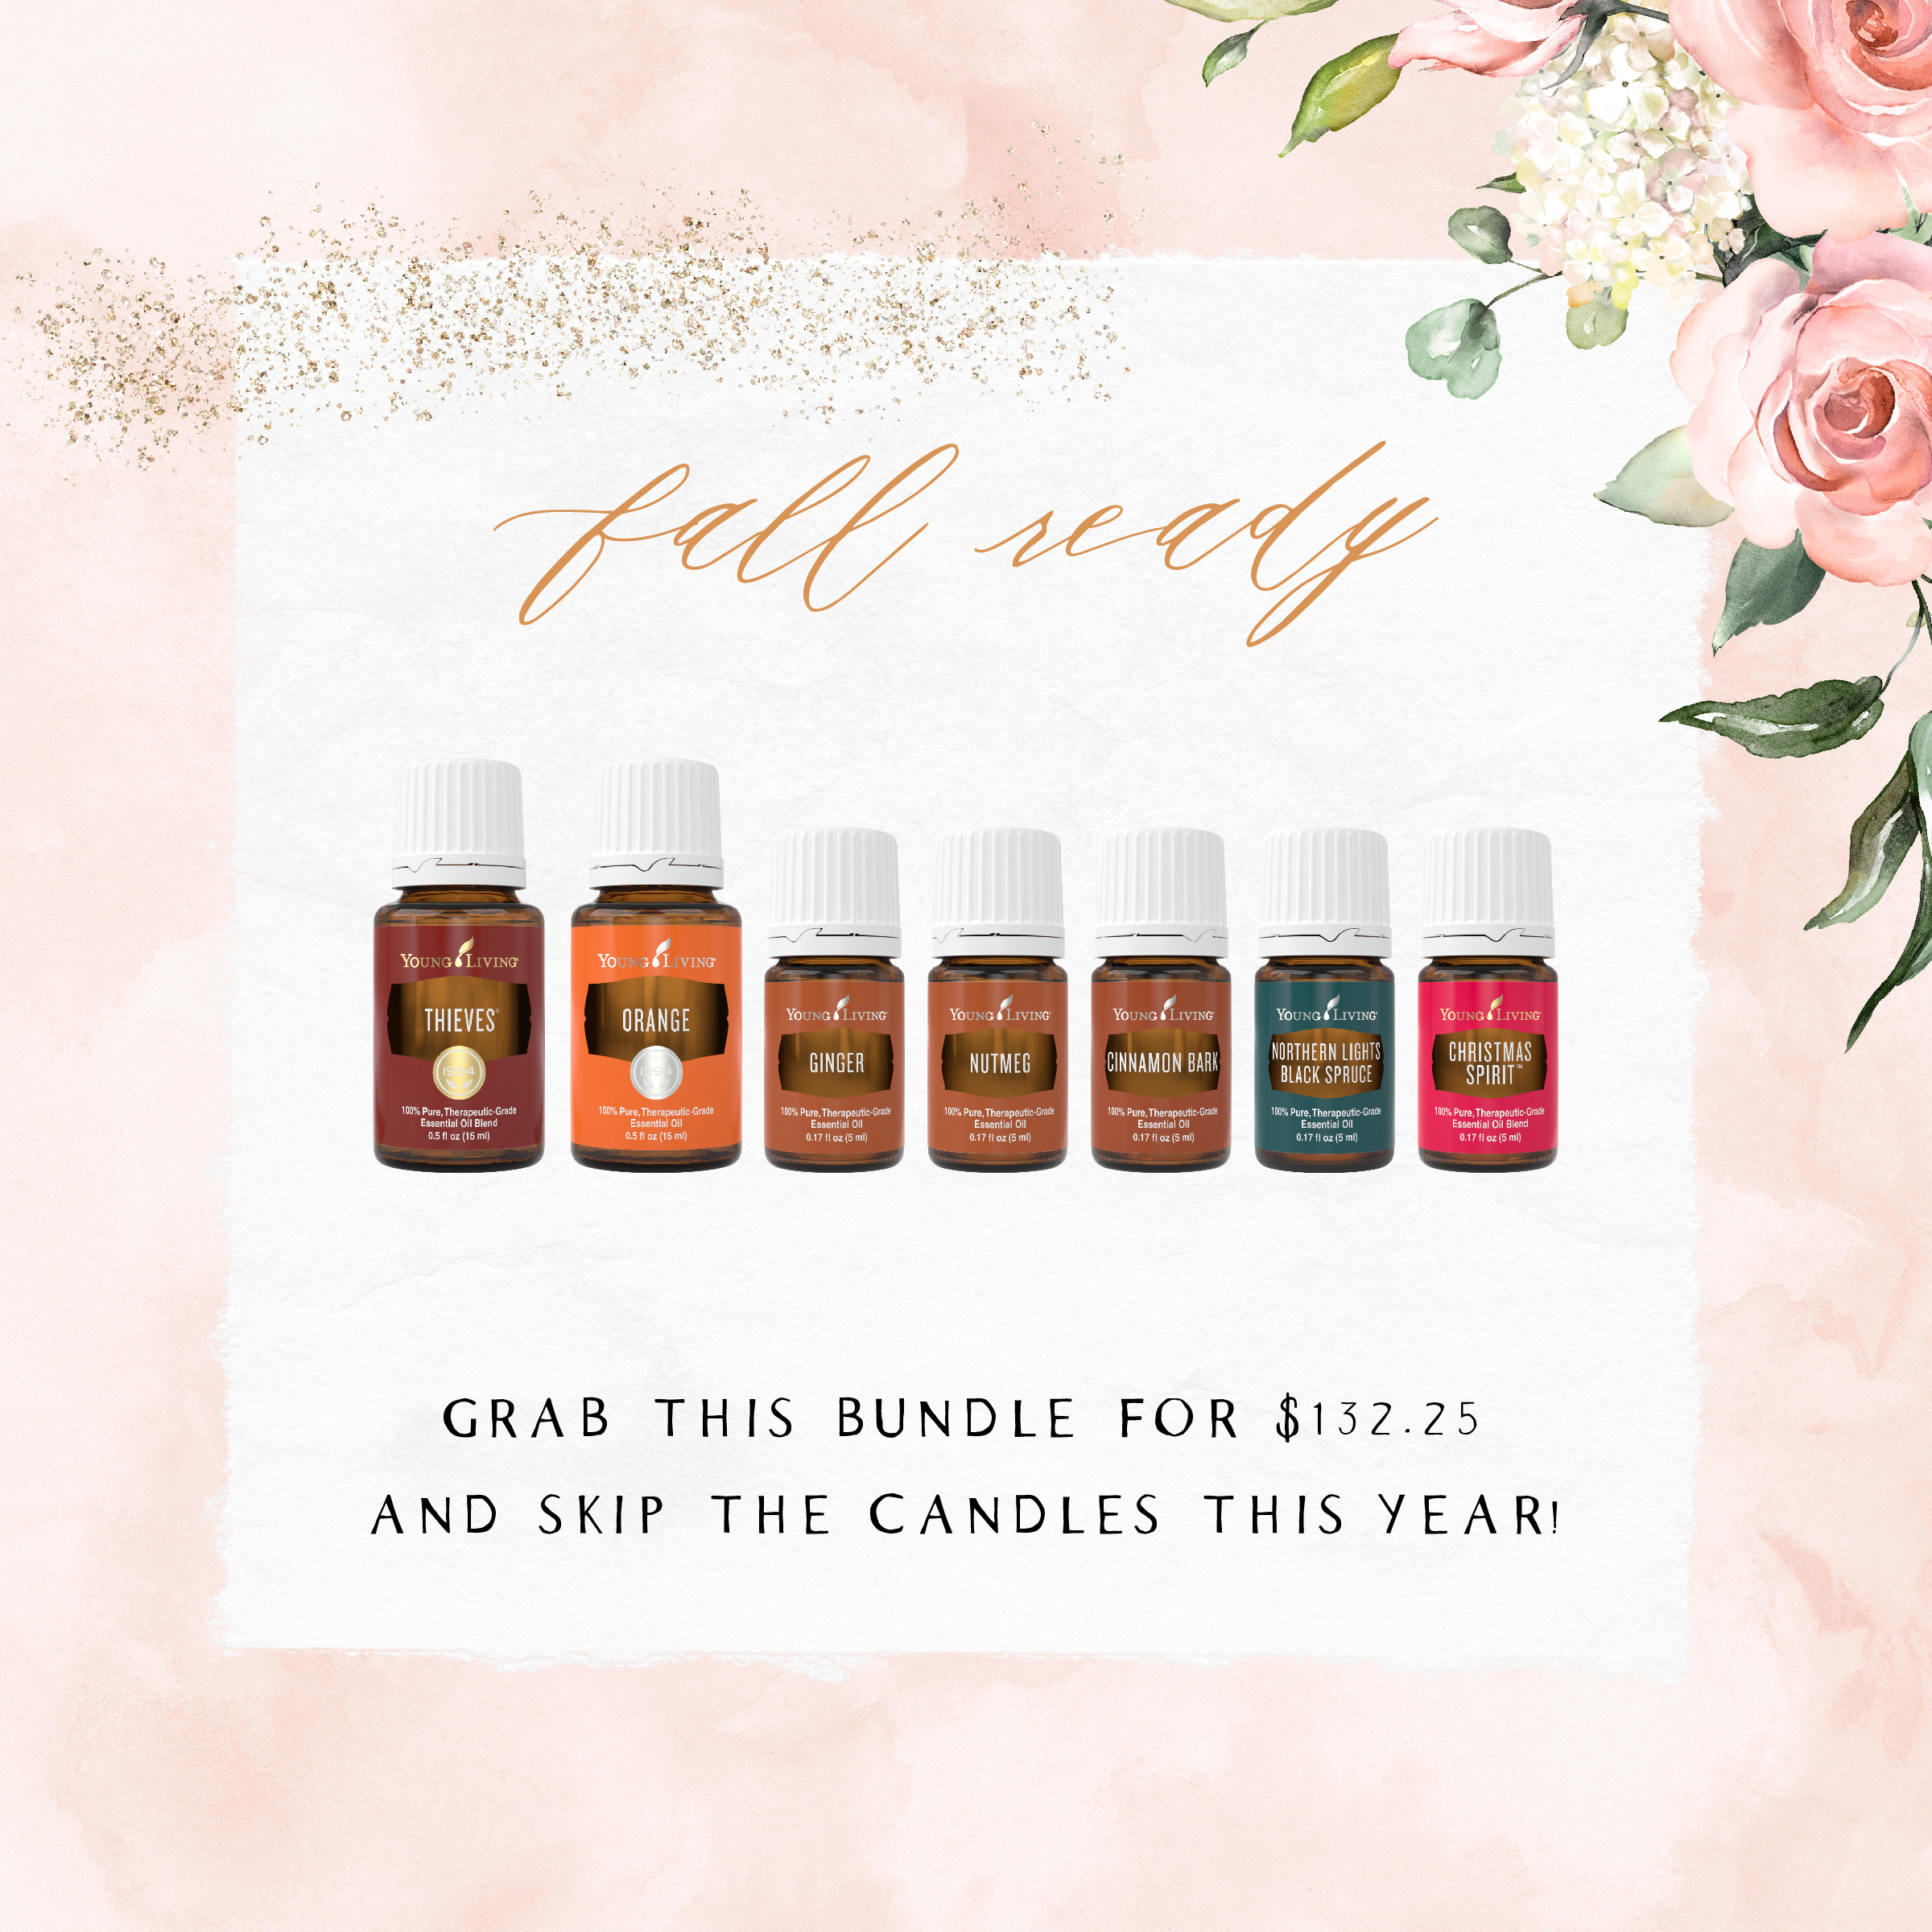 fall ready - Grab this bundle of fall oils for only $132.25!Thieves, Orange, Ginger, Nutmeg, Cinnamon Bark, Northern Lights Black Spruce, and Christmas Spirit are all absolute favorites for our diffuser in the cool months!